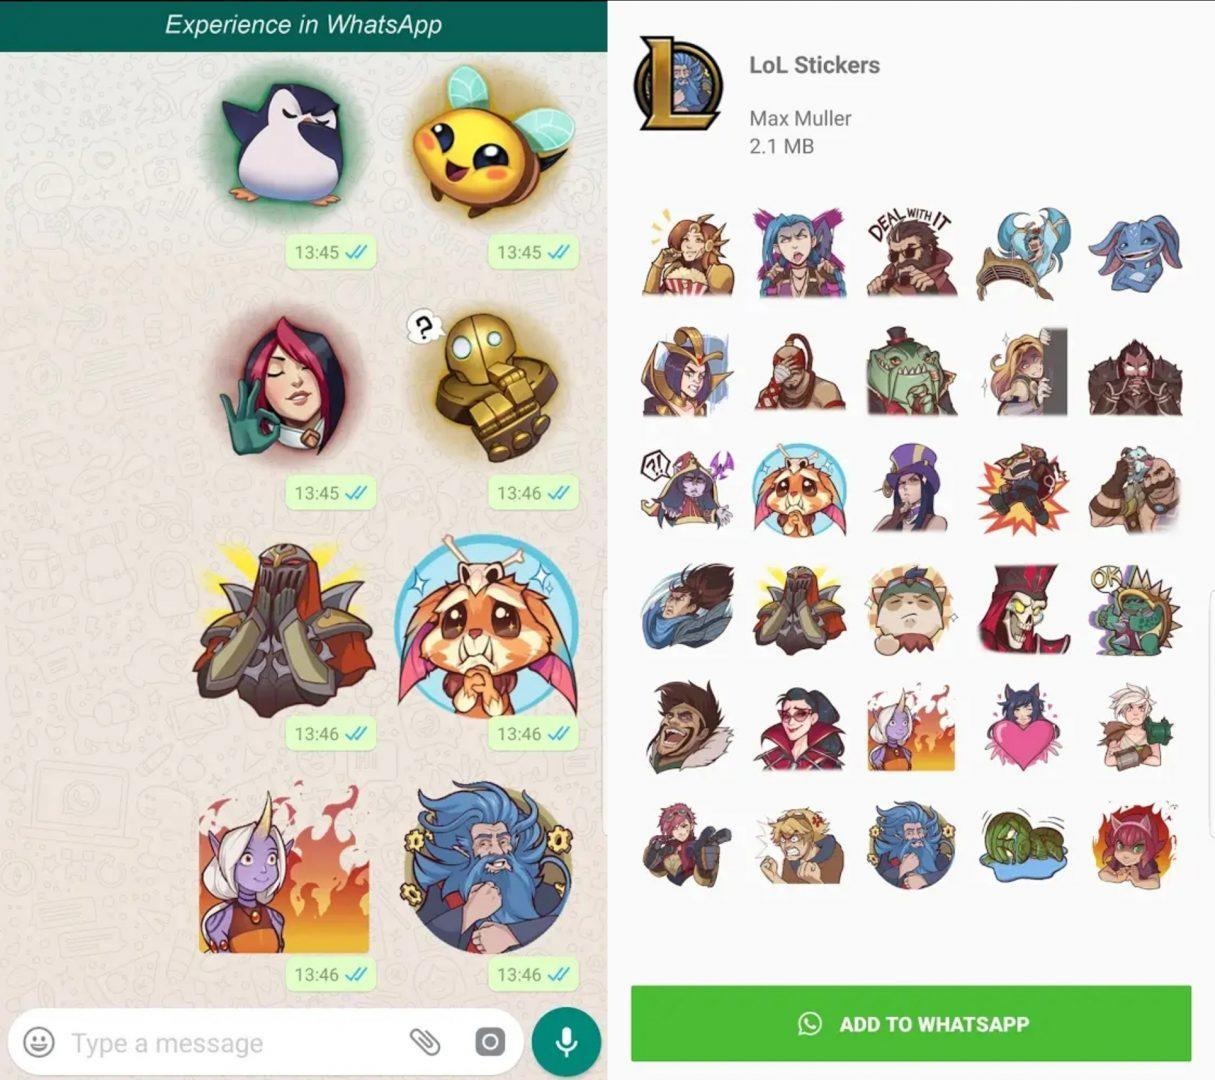 Stickers In Whatsapp 32 Amazing Whatsapp Stickers Pack You Should Check Out